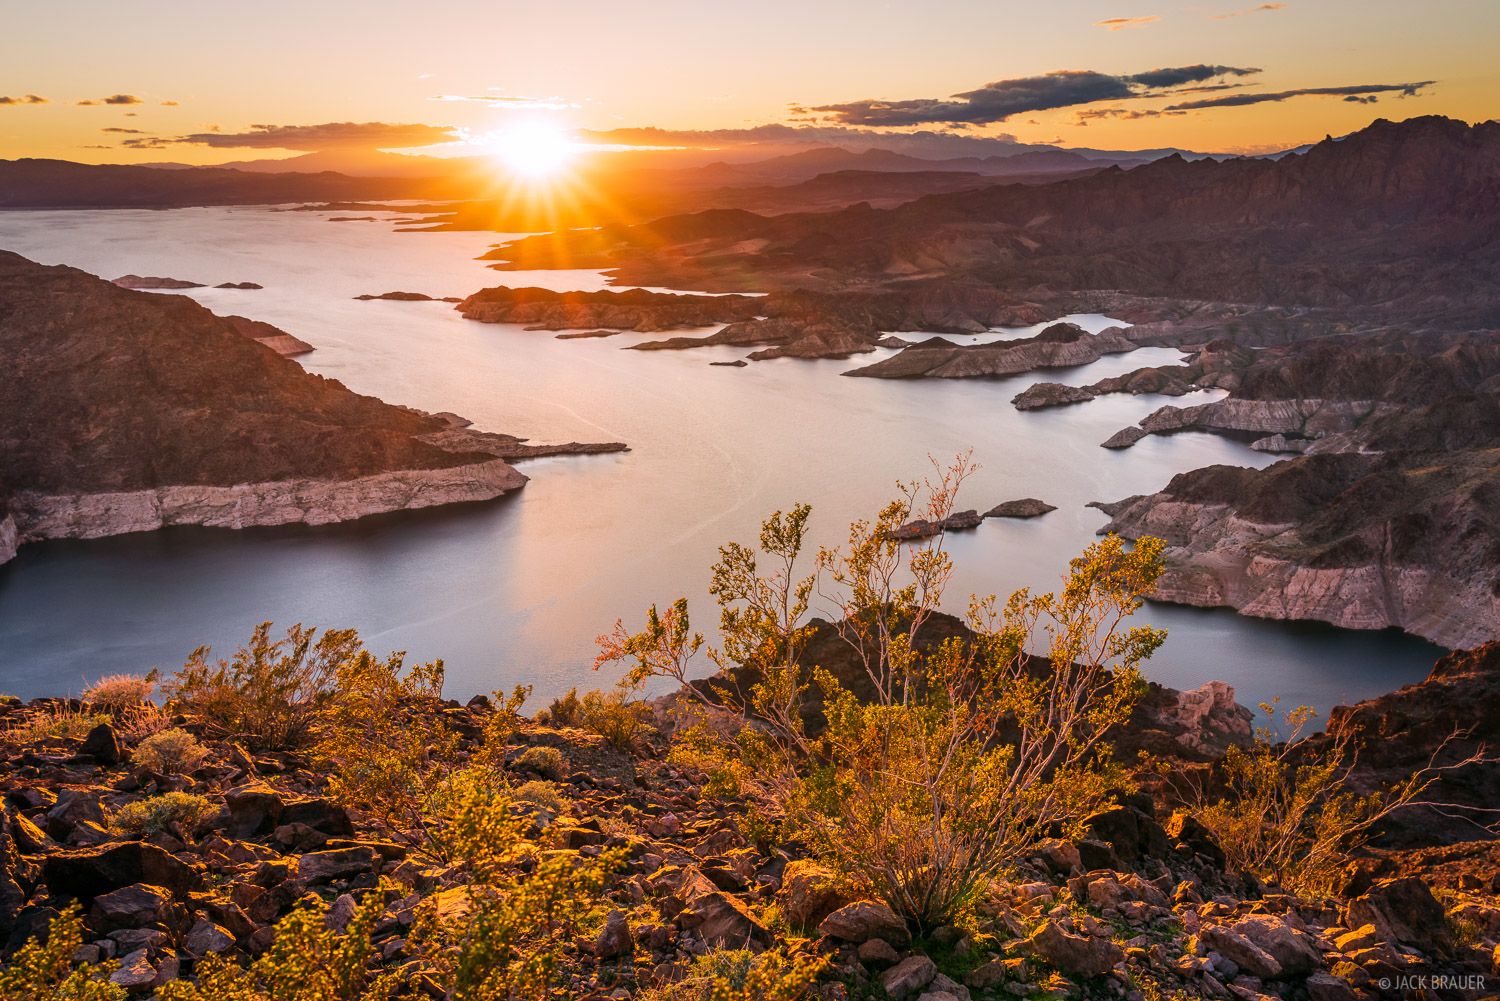 Lake Mead, Nevada, Pinto Valley Wilderness, Mojave Desert, Lake Mead National Recreation Area, photo